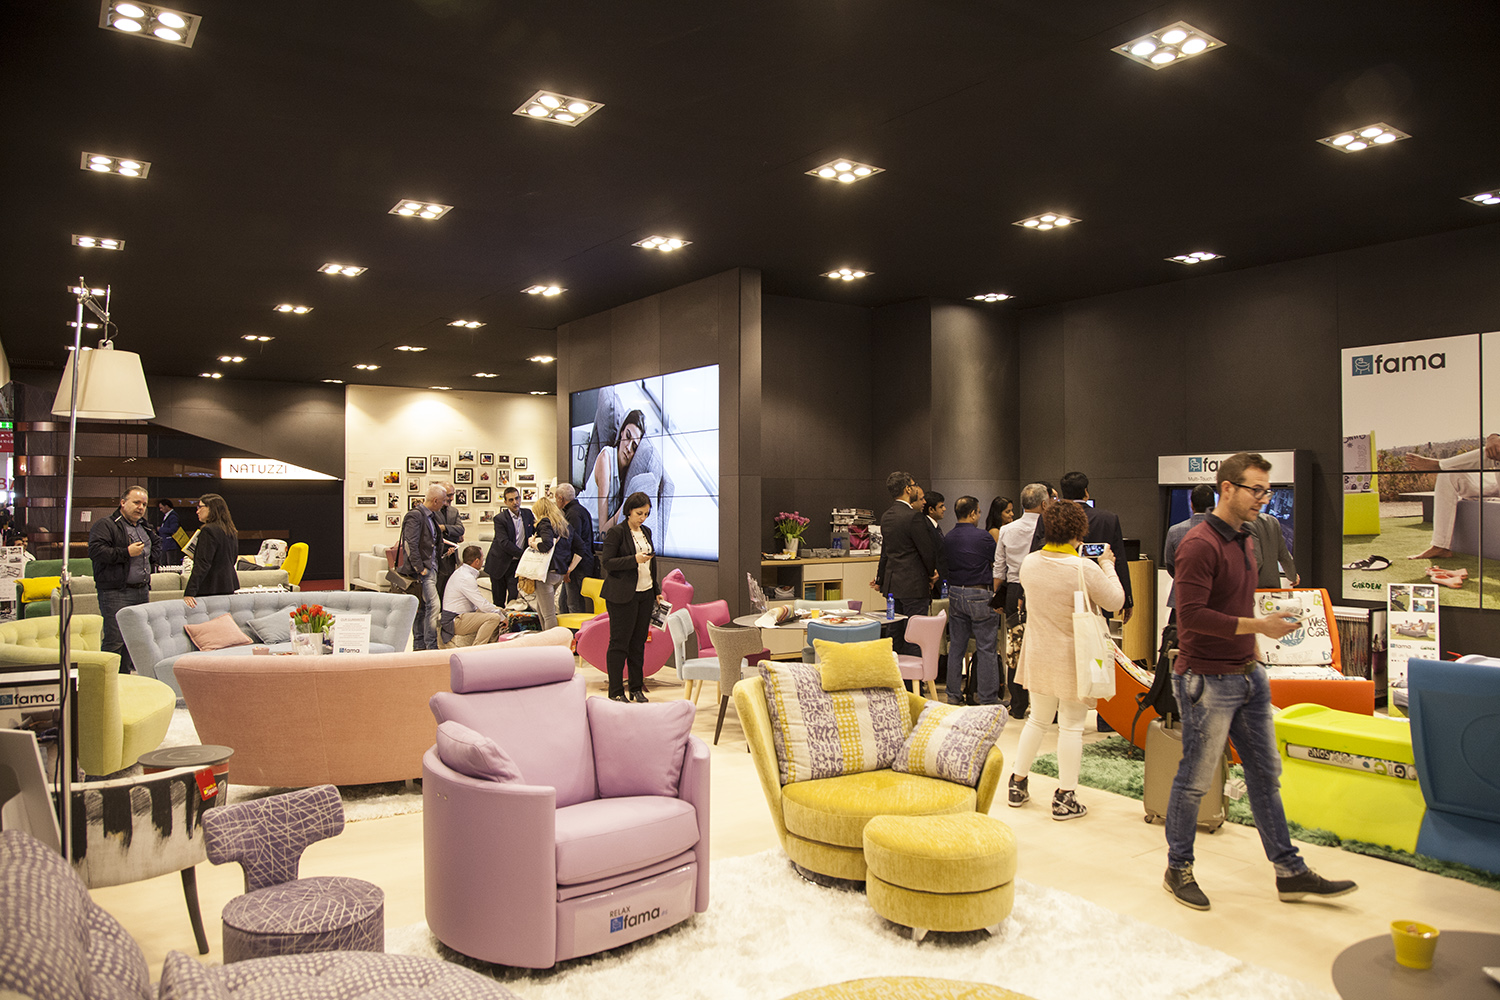 Furniture Brands at ISaloni 2017 You Shouldn't Miss isaloni 2017 Furniture Brands at ISaloni 2017 You Shouldn't Miss Furniture Brands at ISaloni 2017 You Shouldnt Miss 5